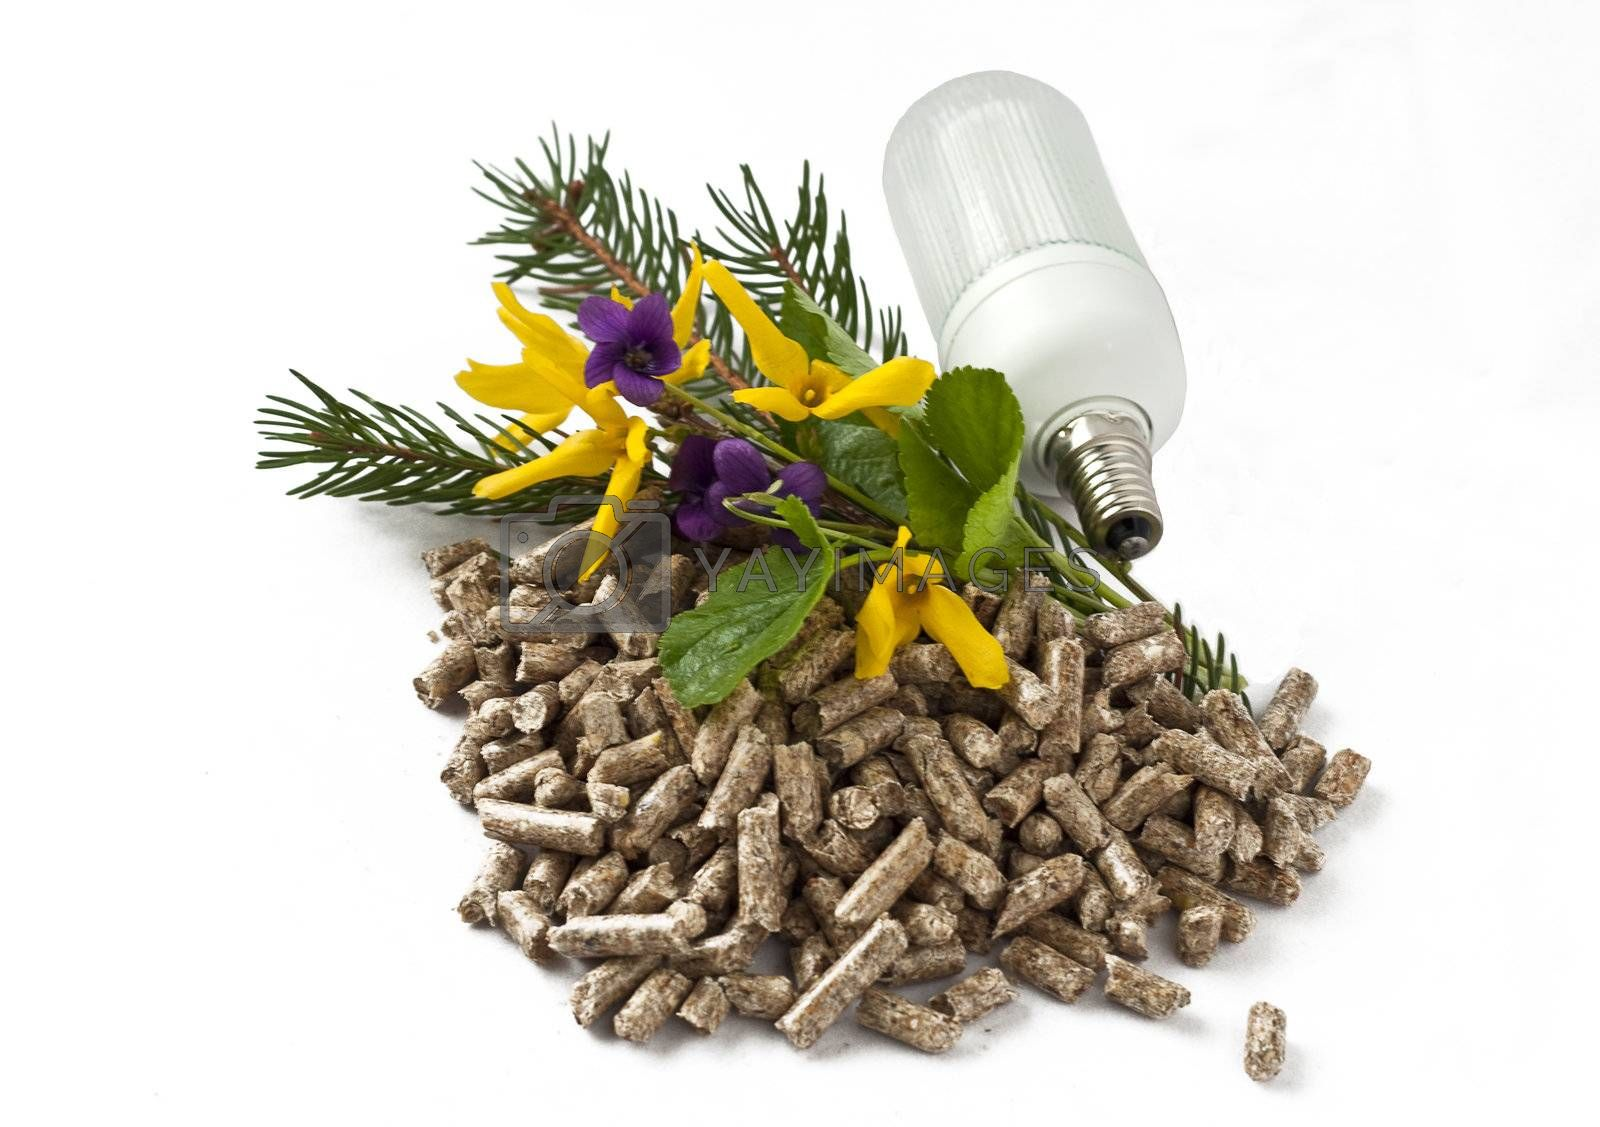 pellet, light bulb and spring flowers on a white background